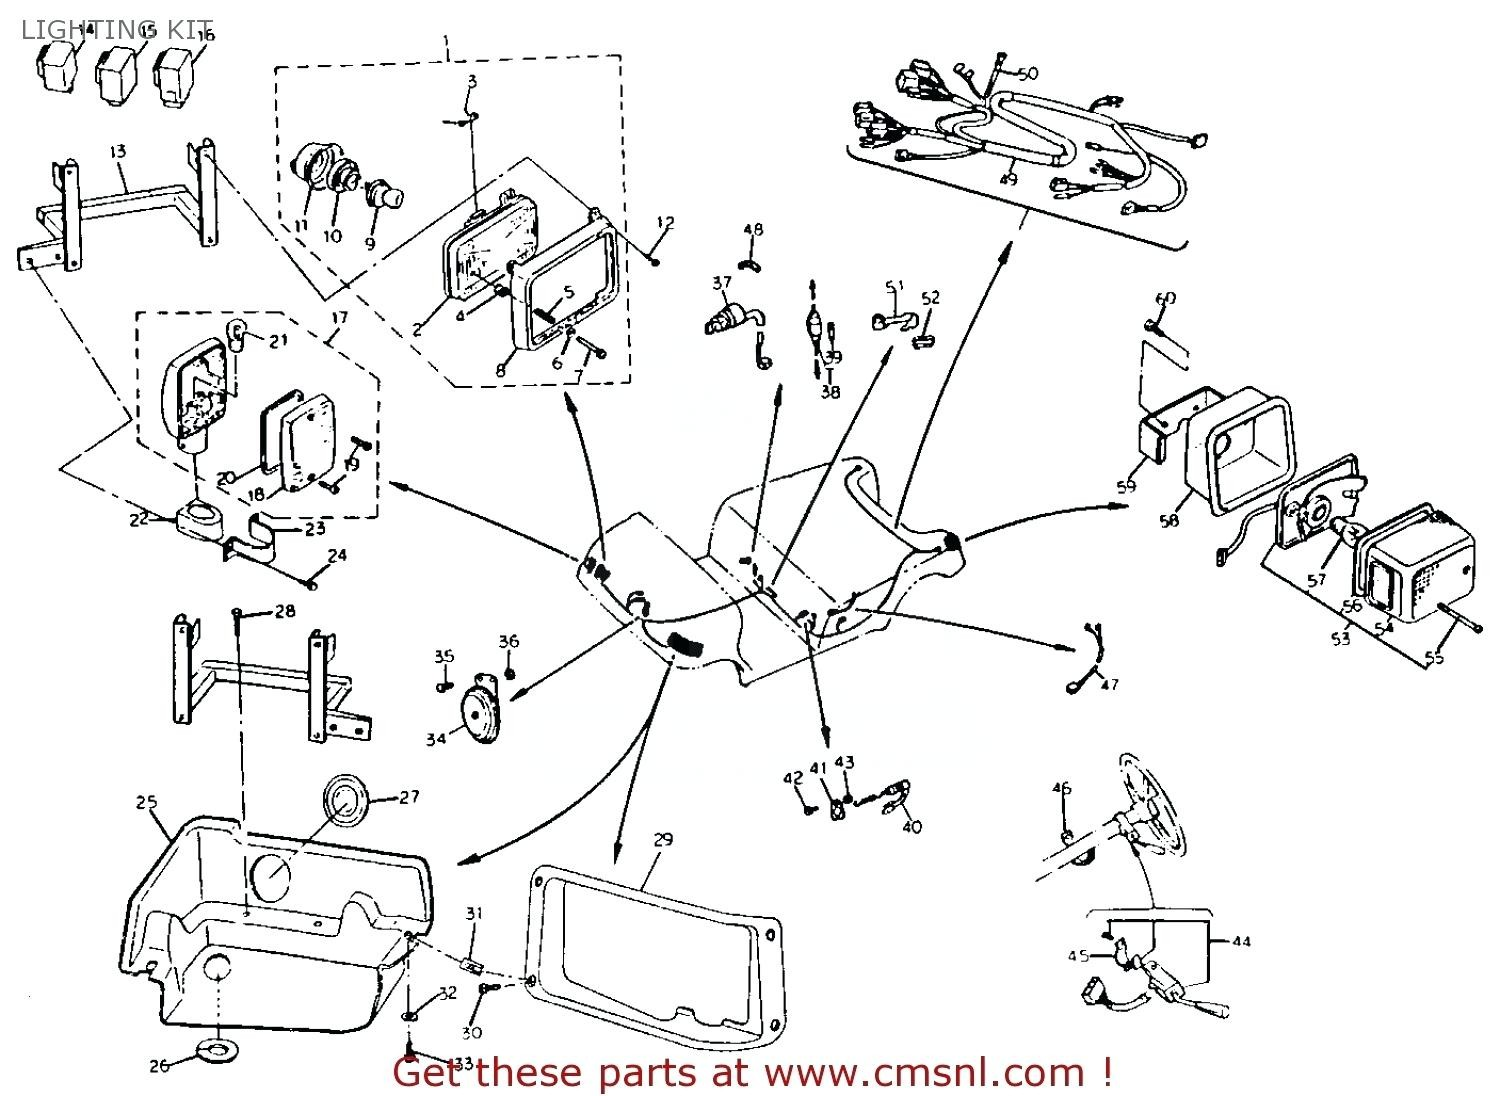 Vx 4091 G16 Golf Cart Wiring Diagram Furthermore Melex 252 Golf Cart Wiring Free Diagram